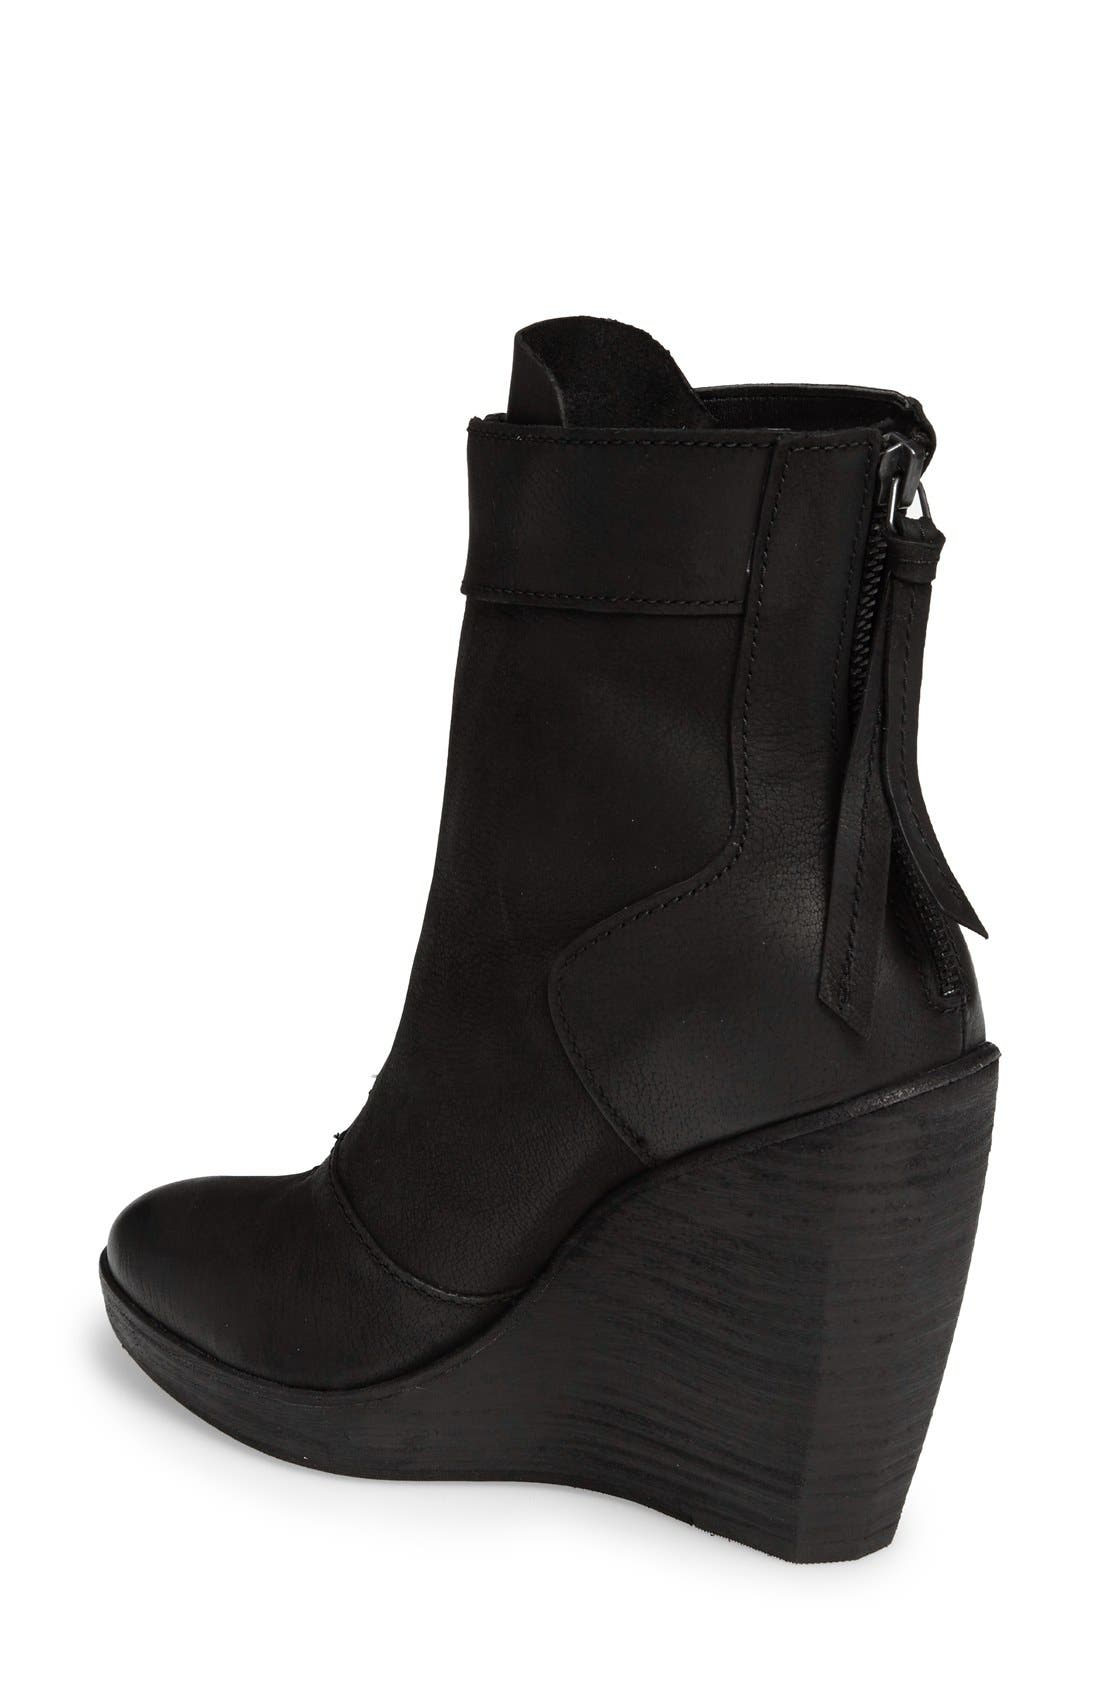 Alternate Image 2  - Dolce Vita Caden Zip Wedge Bootie (Women)